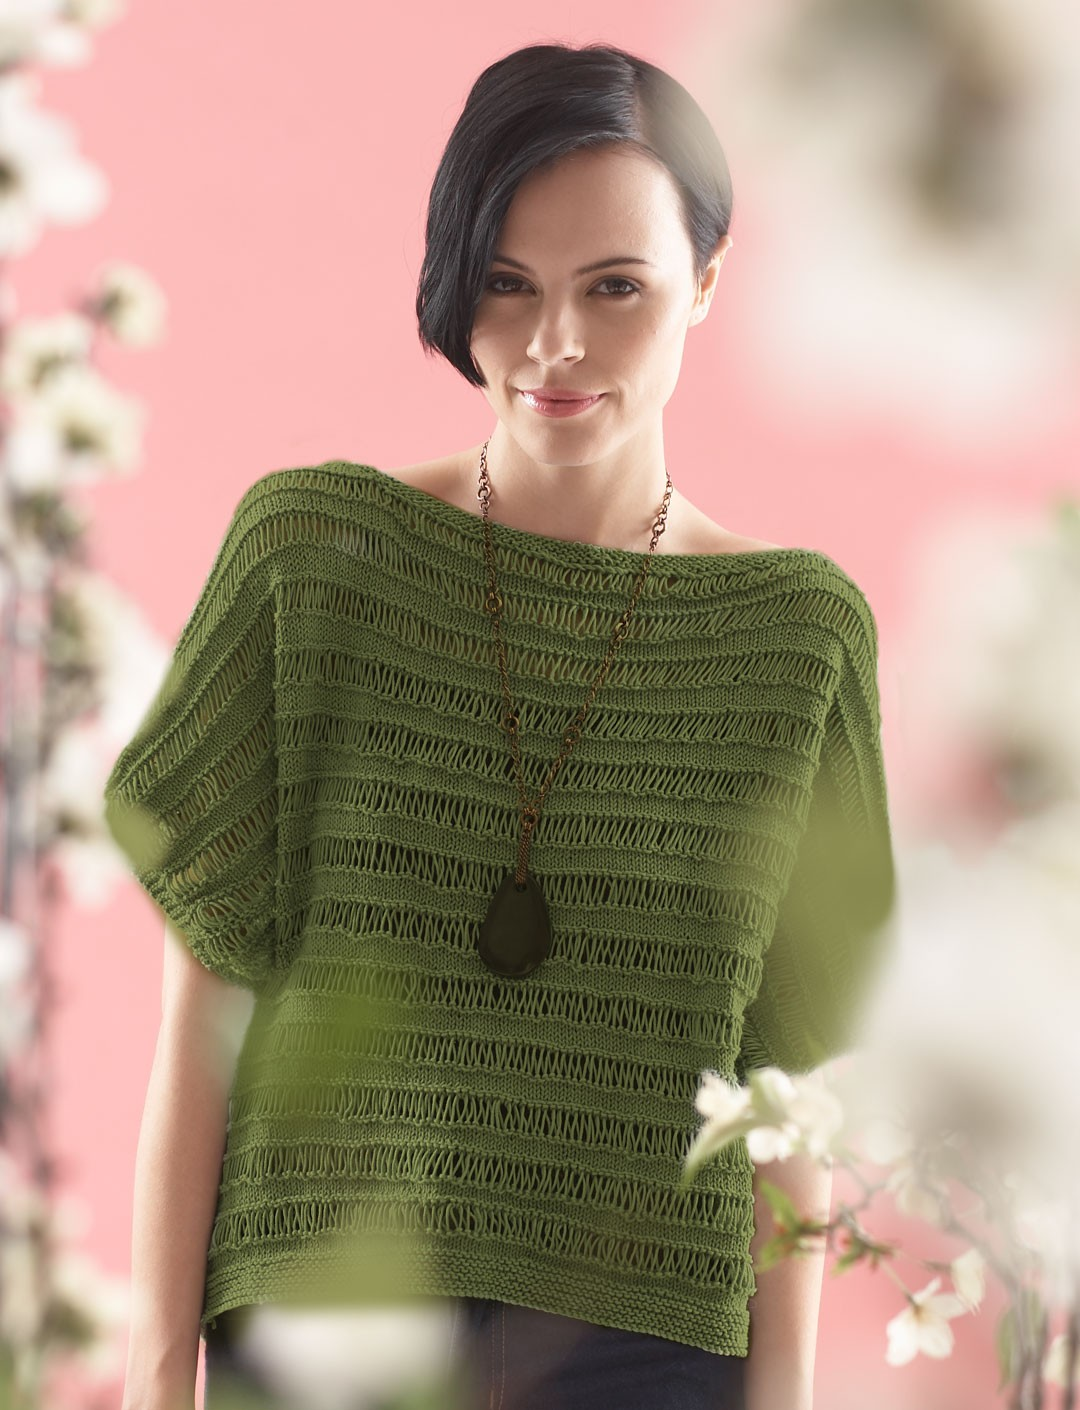 Free Drop Stitch Knitting Patterns : Patons Grace - Drop Stitch Top, Knit Pattern Yarnspirations